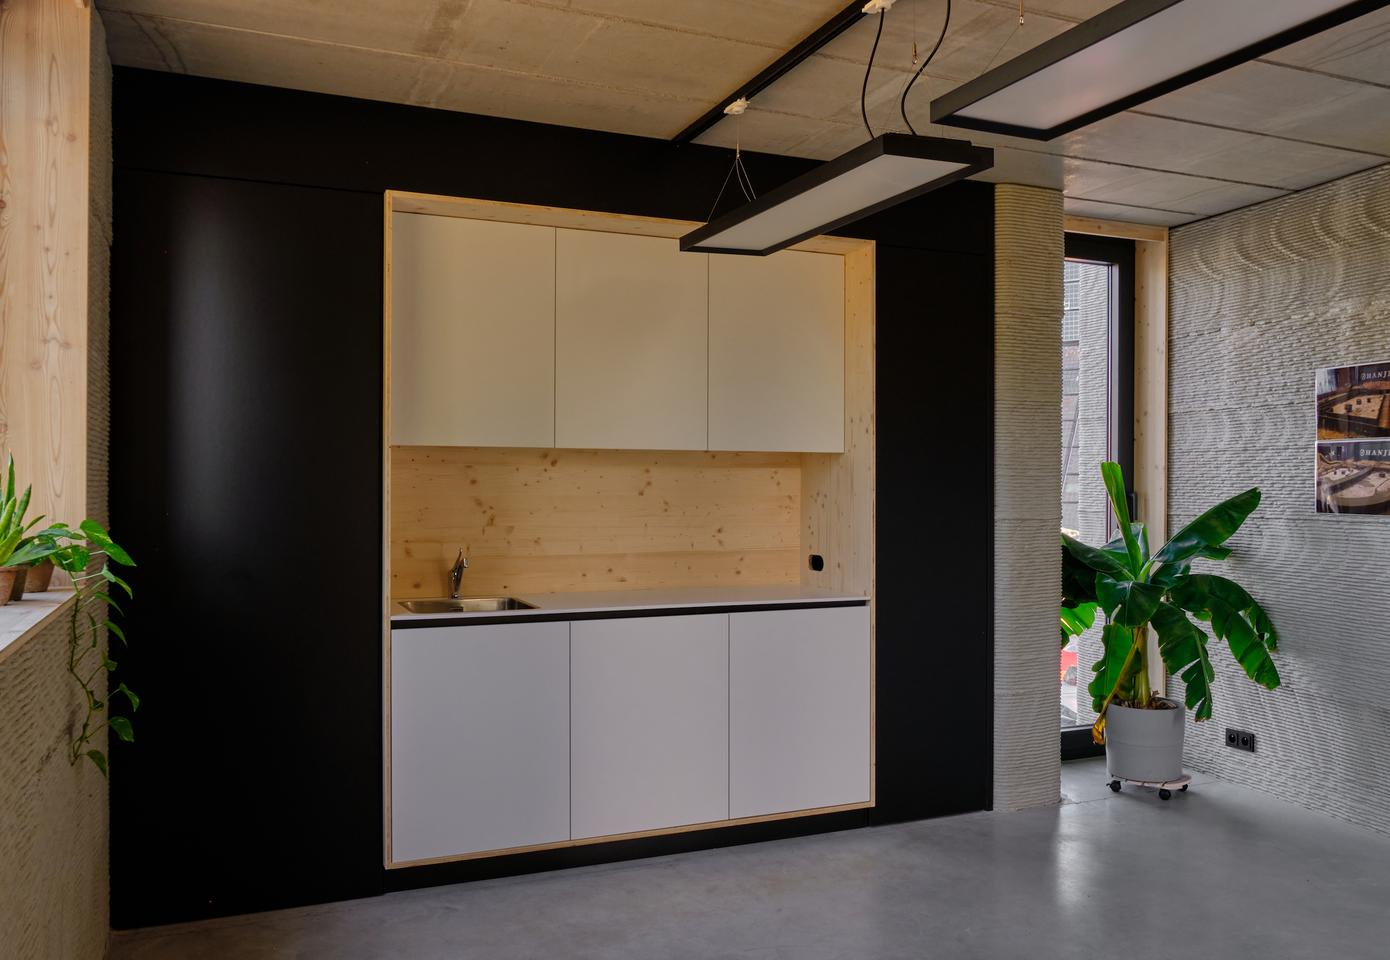 The 3D-printed house includes a simple kitchenette